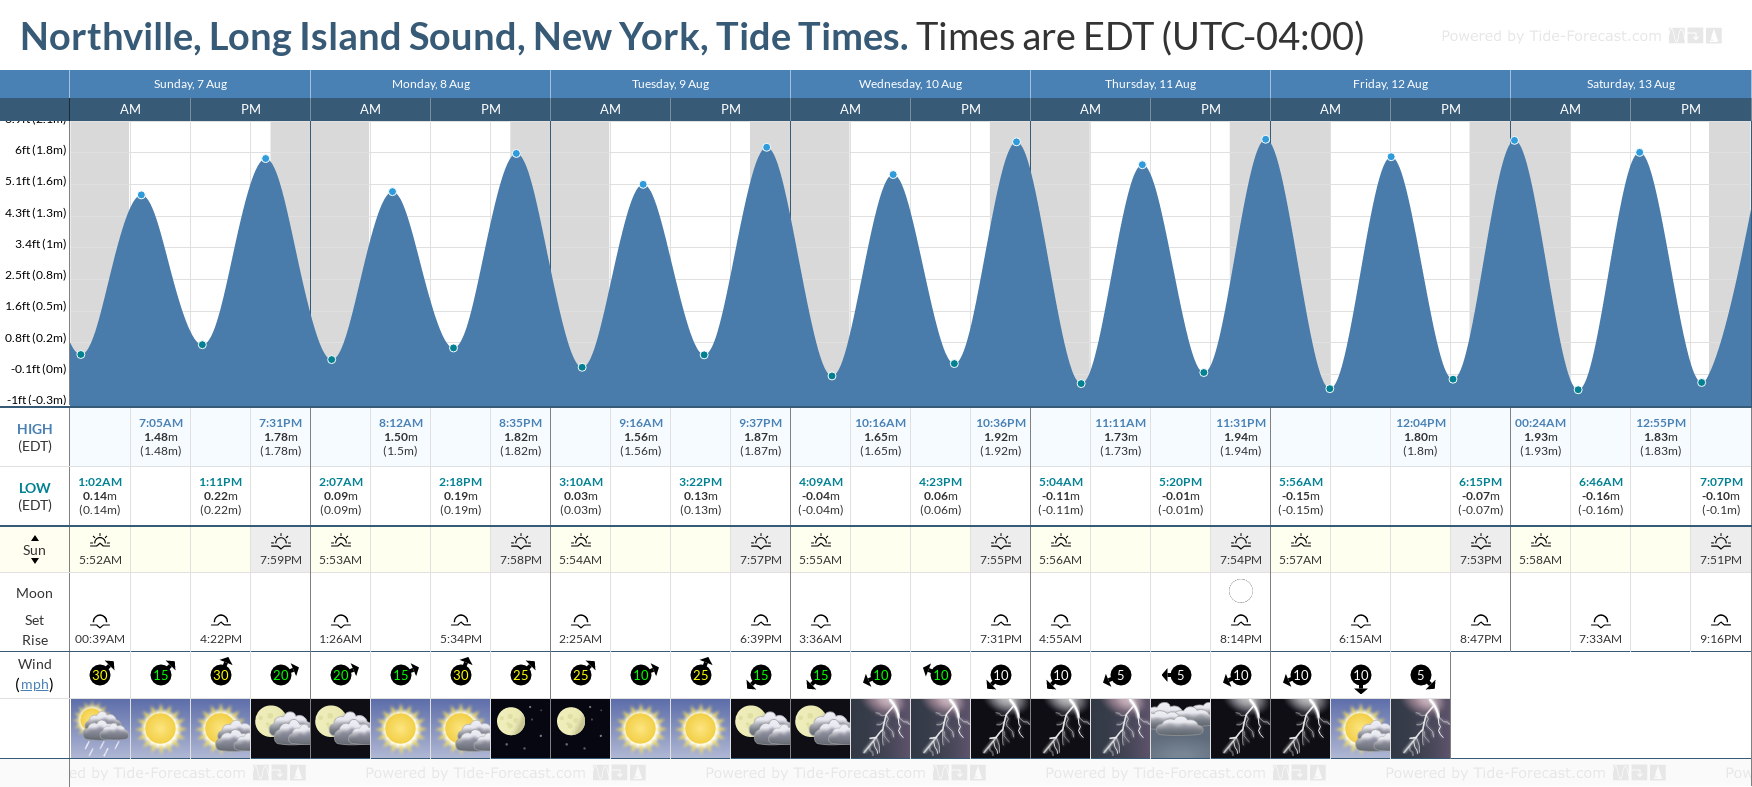 Tide Times And Tide Chart For Northville Long Island Sound